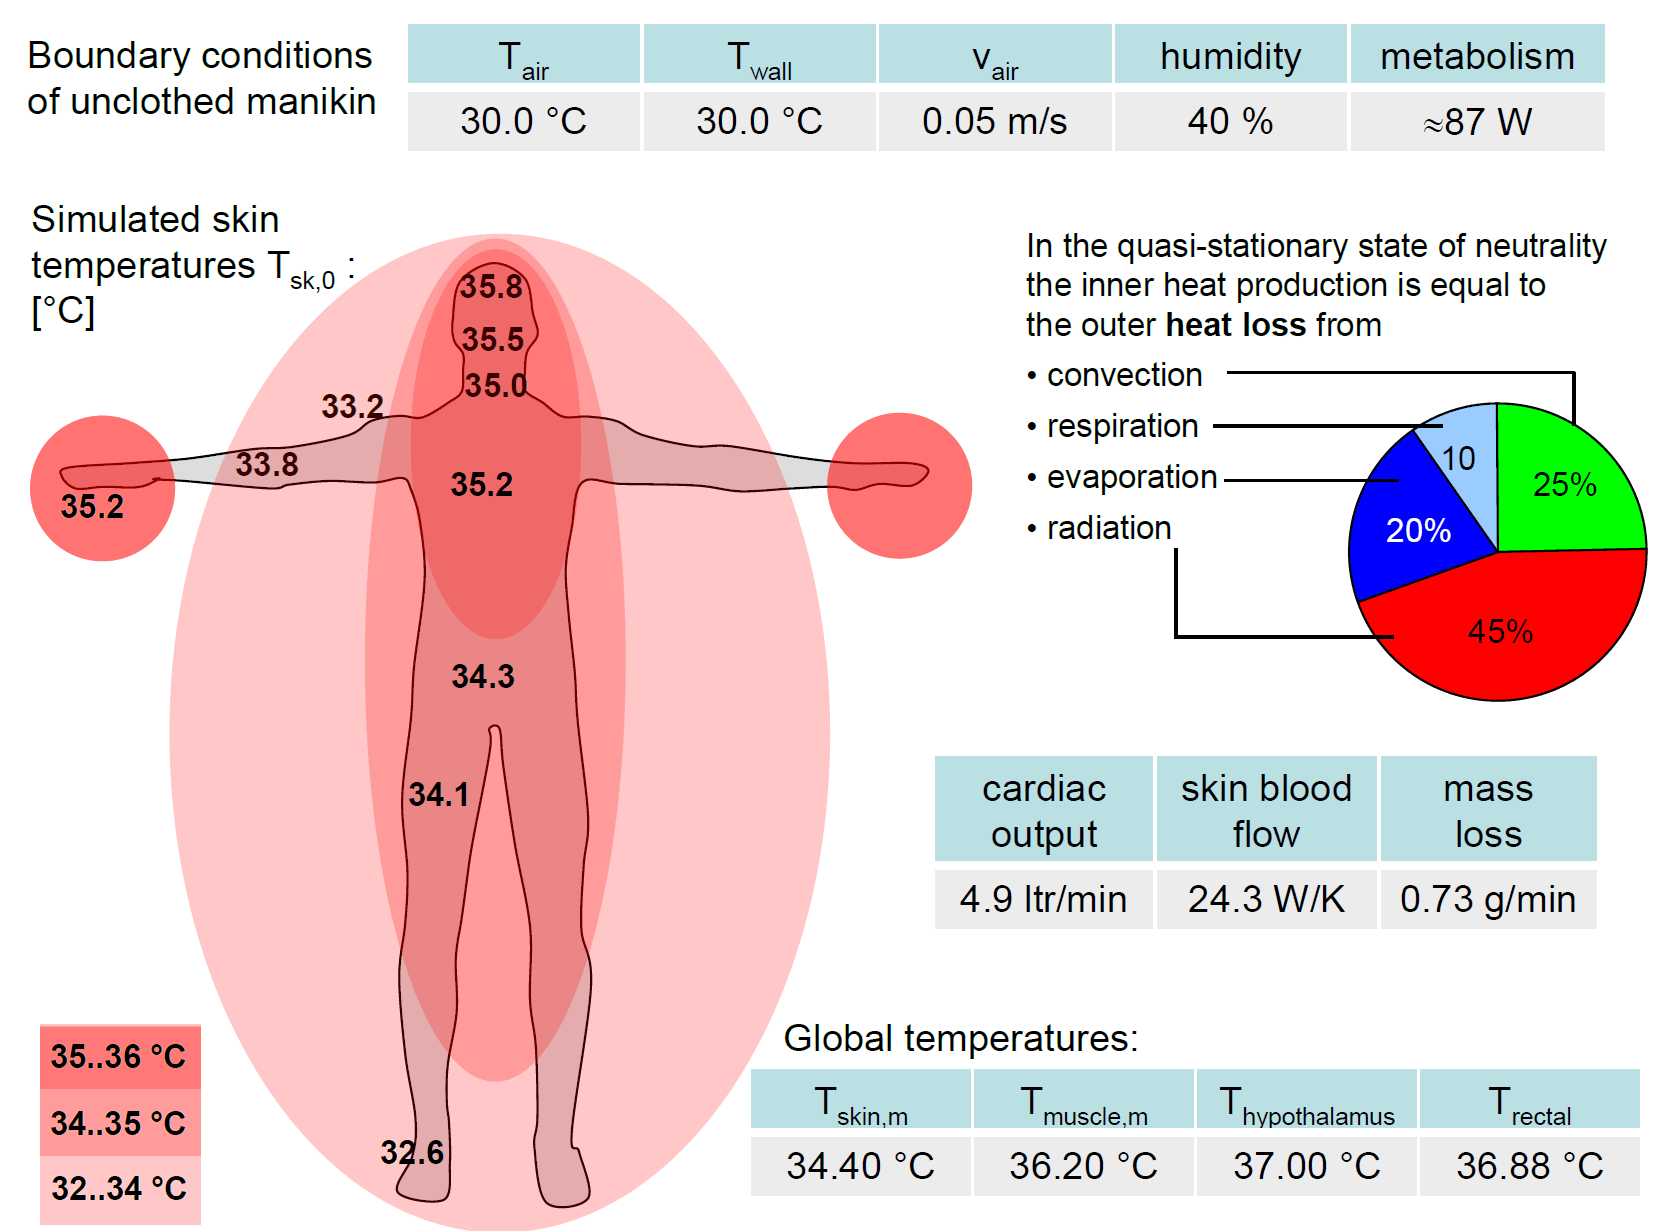 Schematic showing Typical Temperature Results and other Quantities for Thermal Neutrality State of Virtual Human Thermal Model